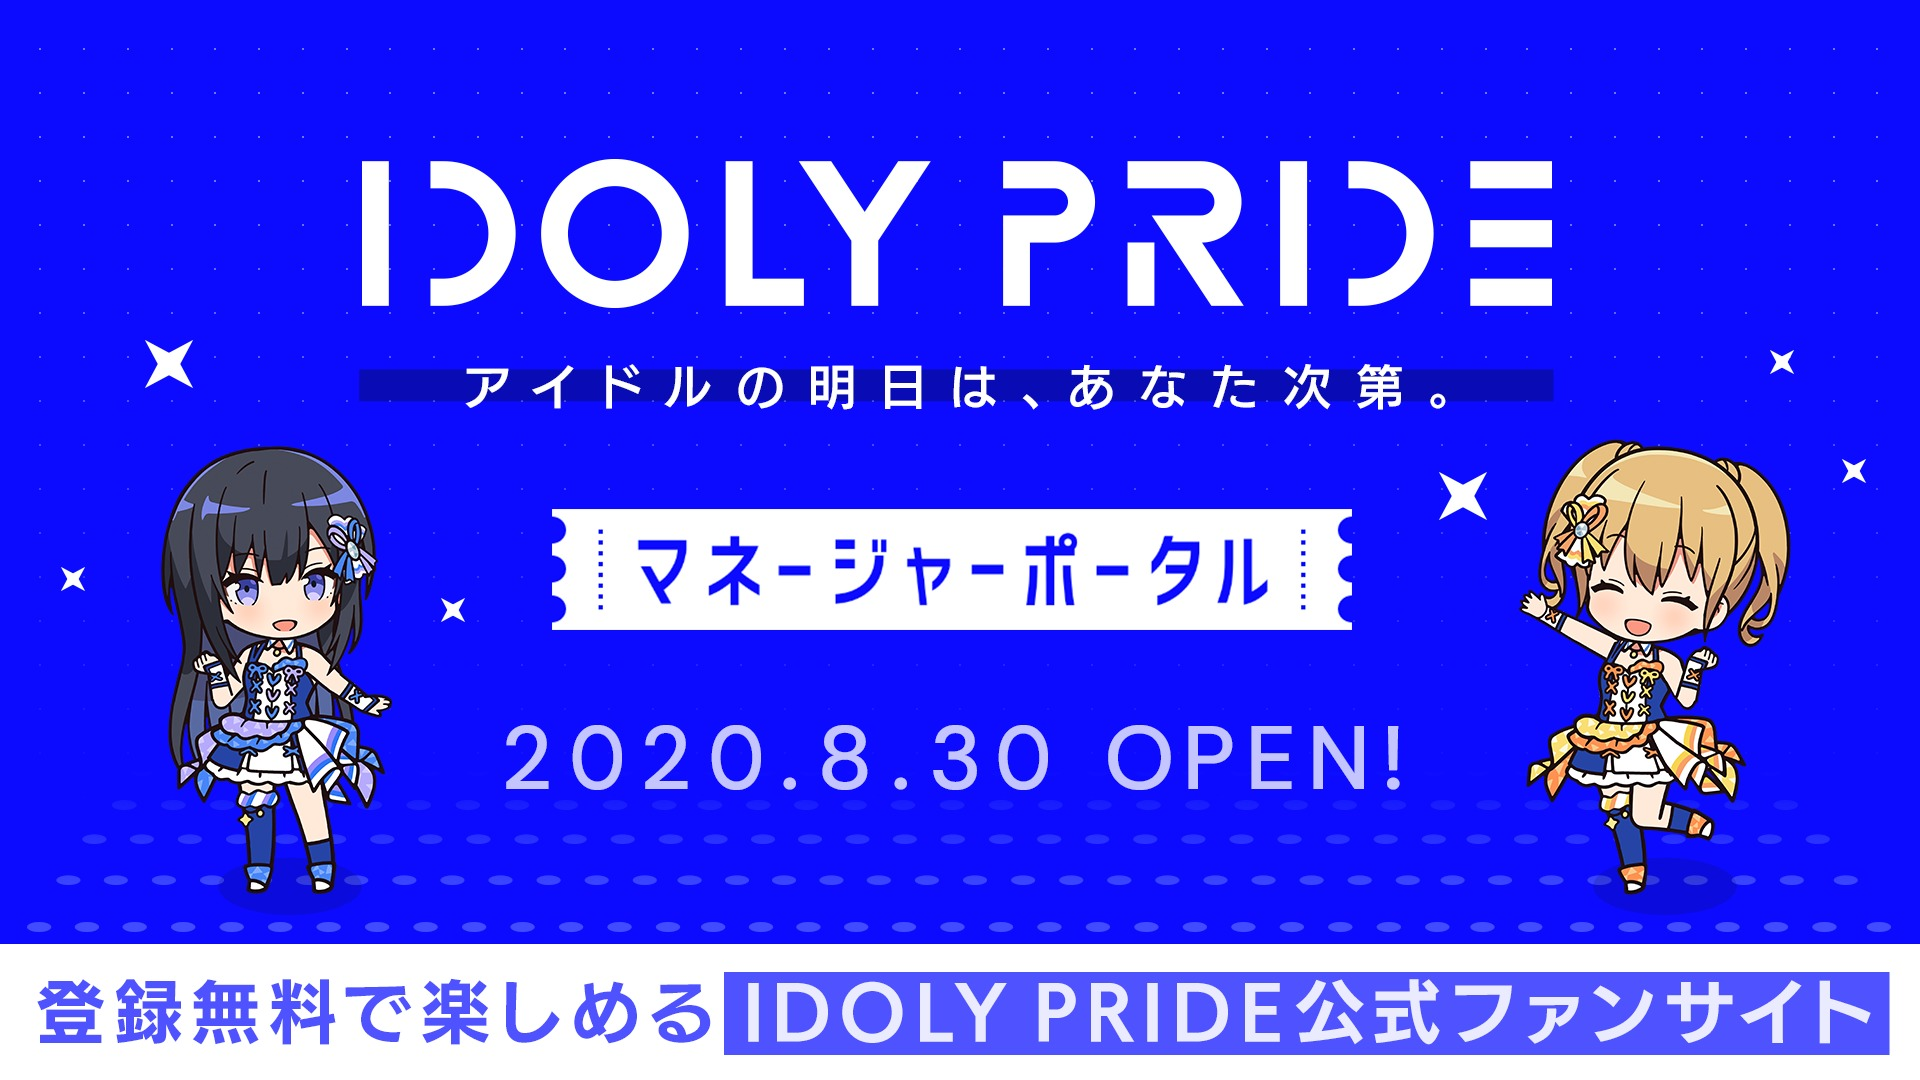 (C) 2019 Project IDOLY PRIDE